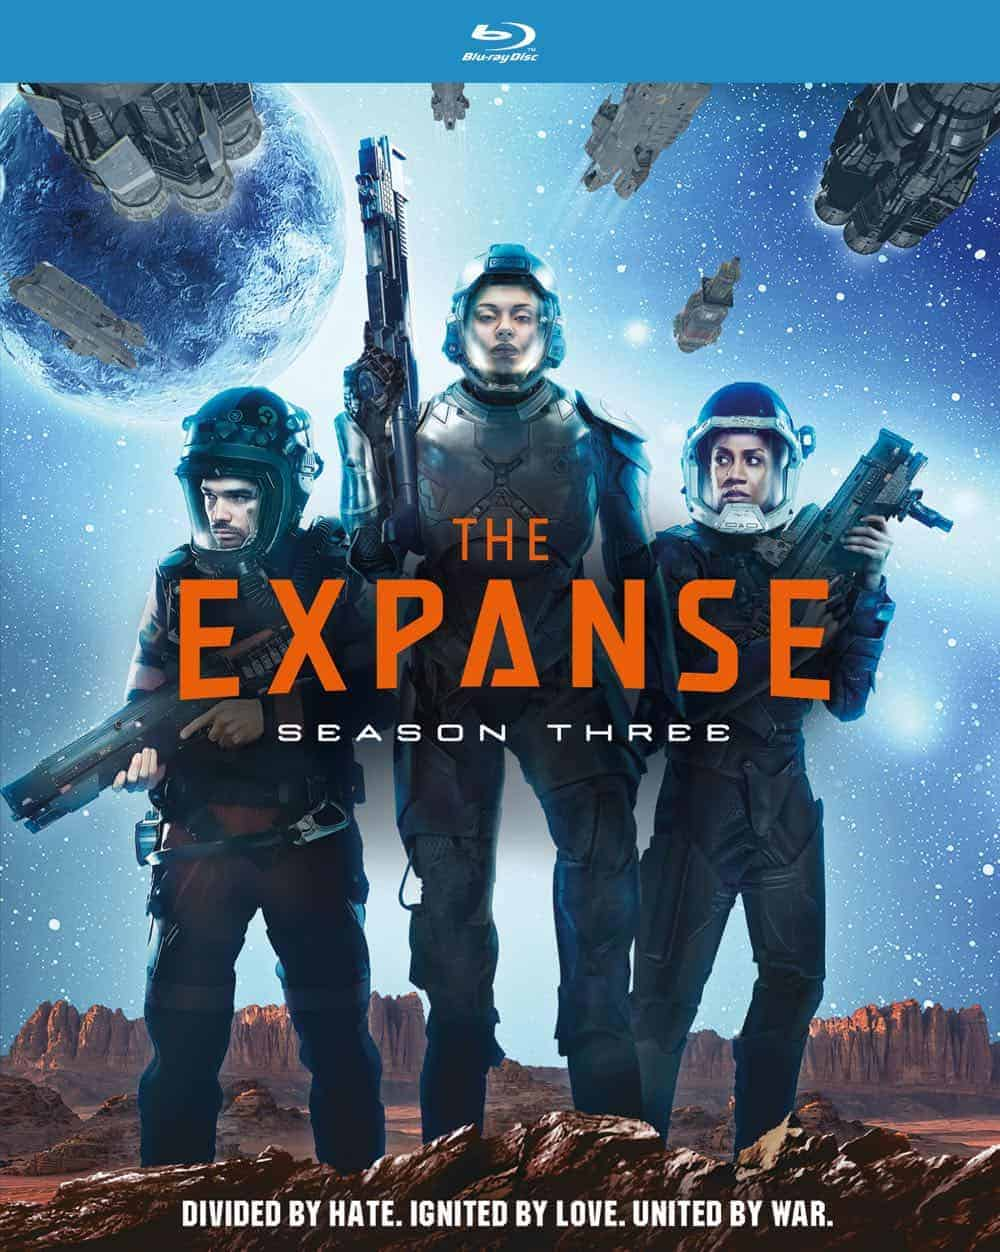 THE EXPANSE Season 3 Blu-ray